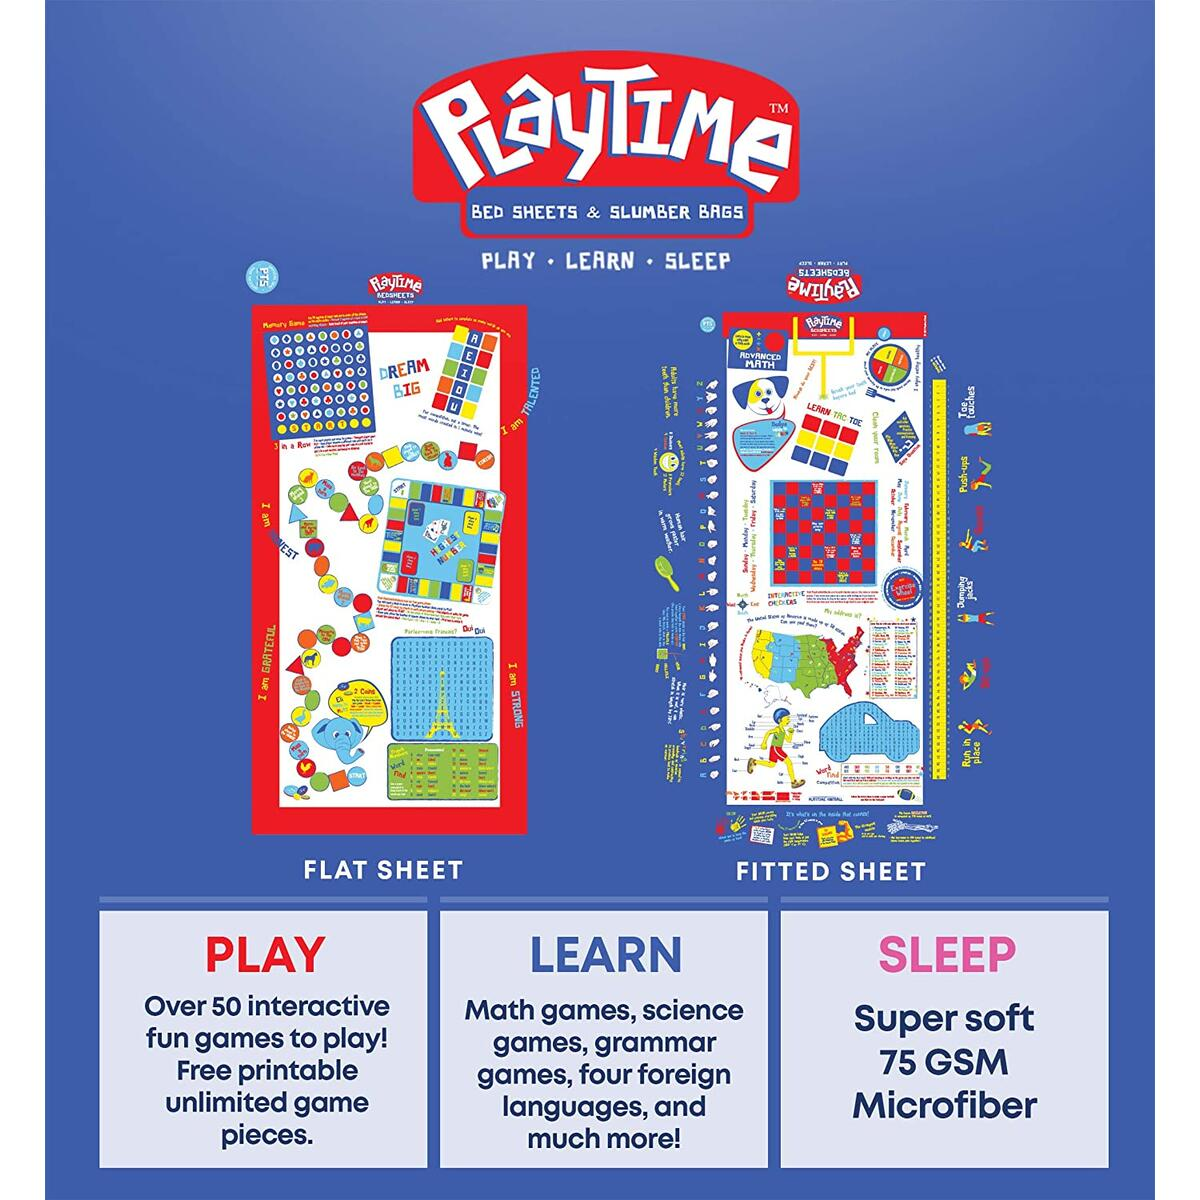 Playtime Bed Sheets Blue Twin Sheet Set with Over 50 Fun and Educational Games & Puzzles. 3 Piece Ultra Soft Microfiber Bedding Set for Kids!